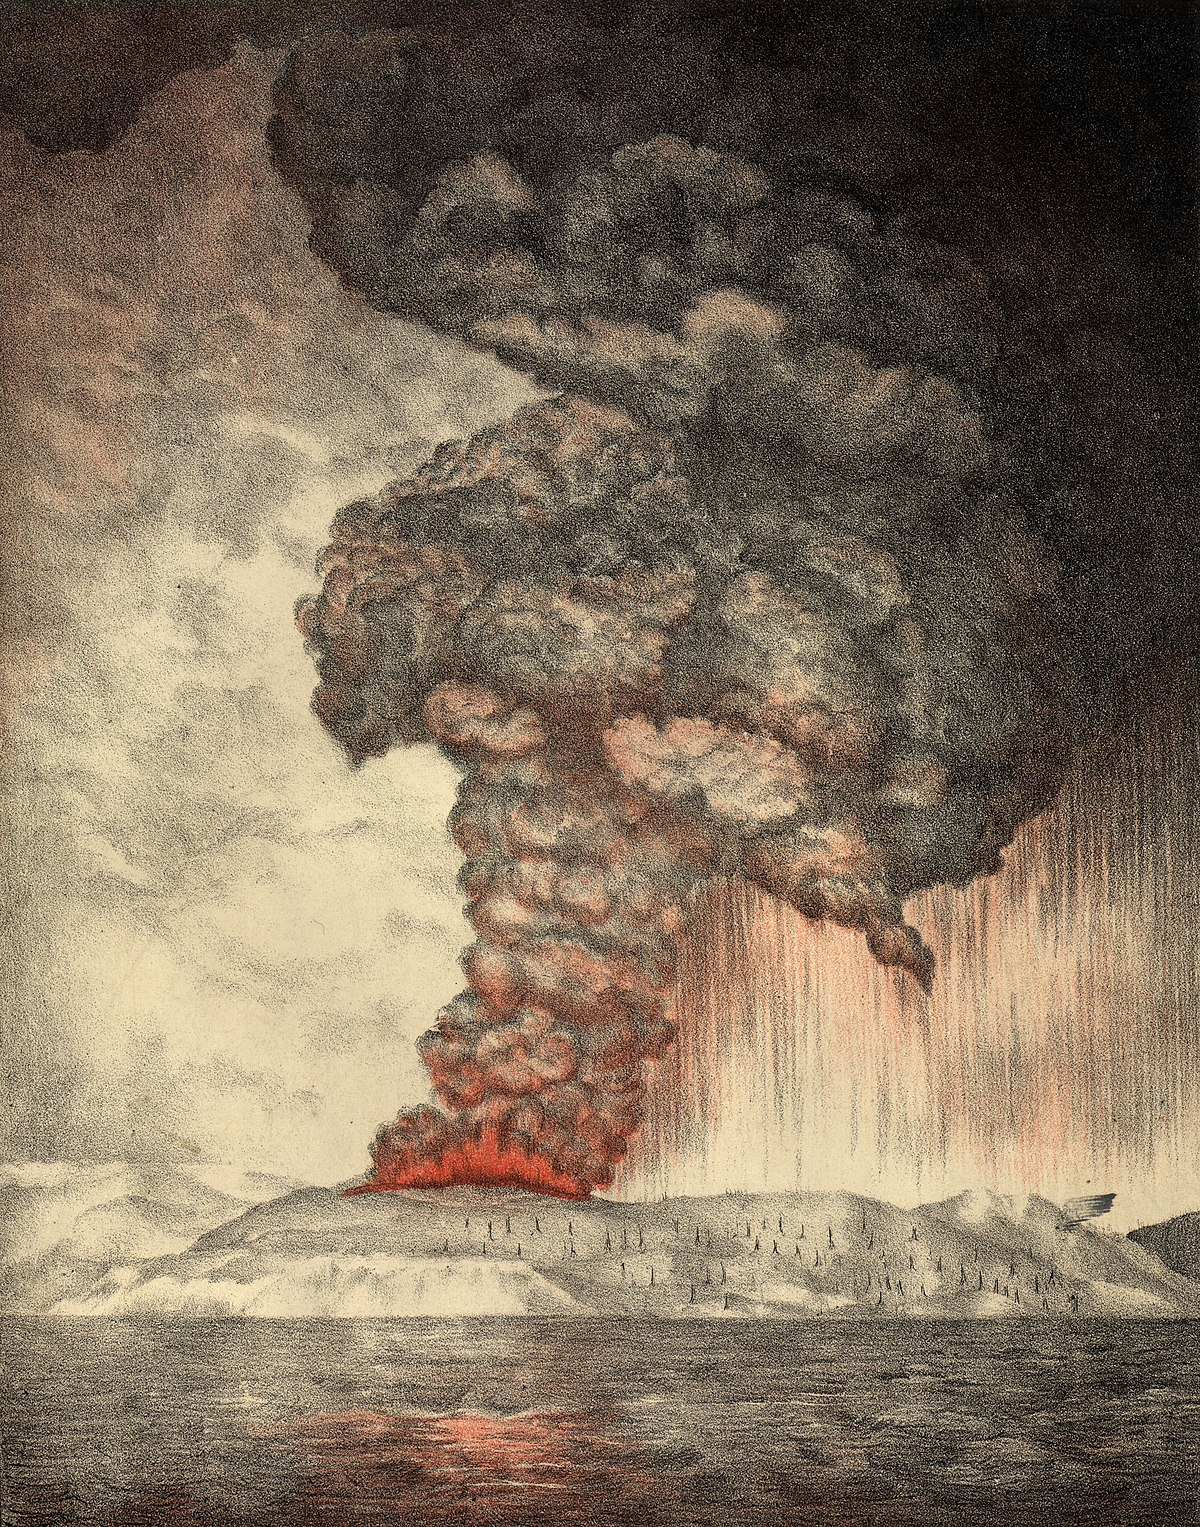 1883 eruption of Krakatoa - Wikipedia